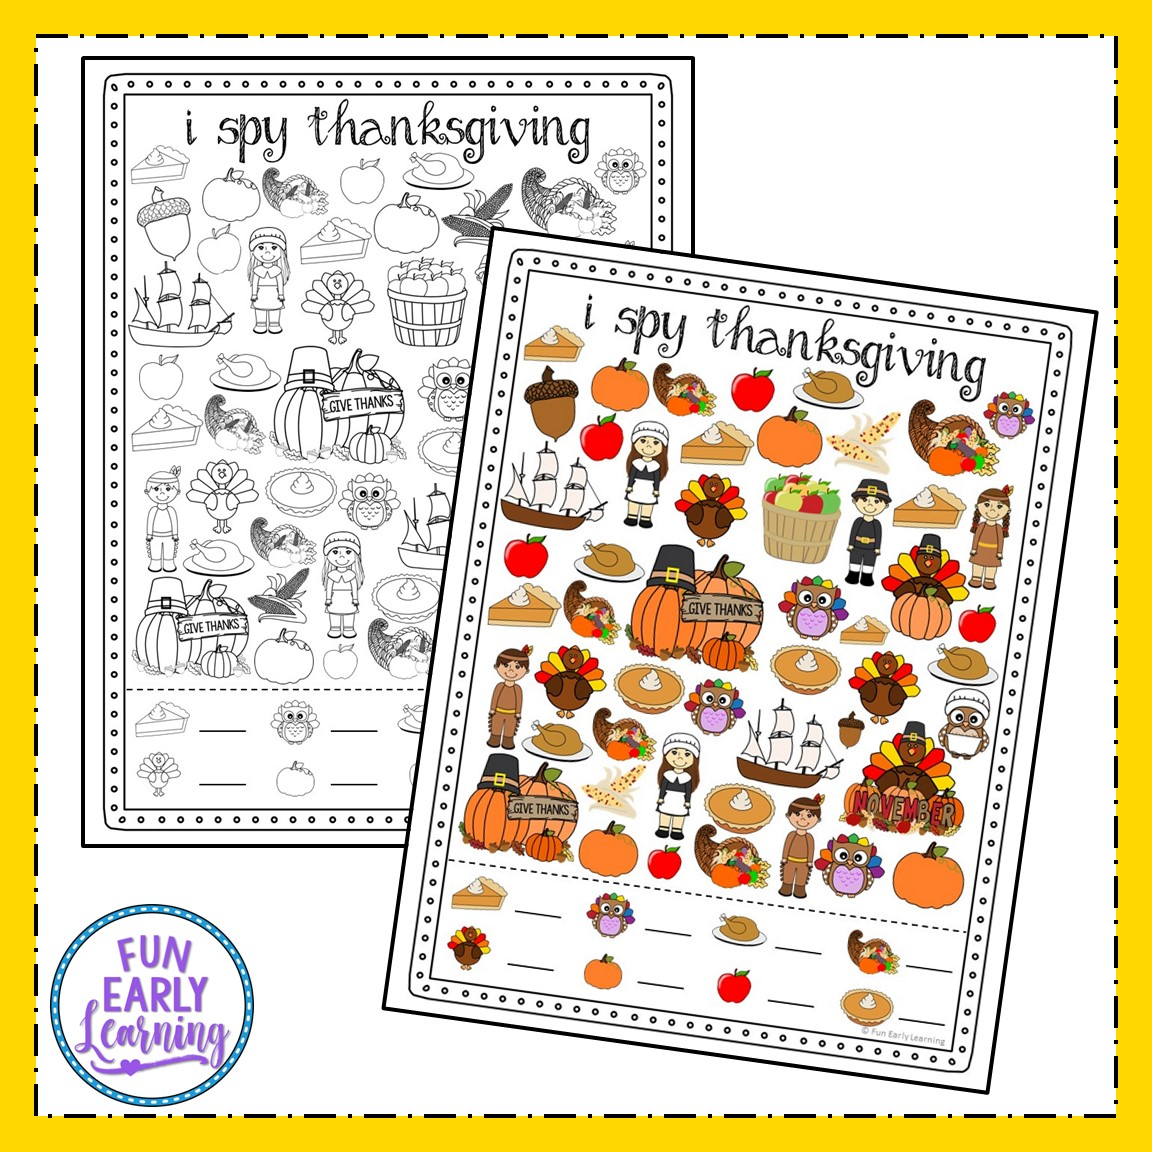 I Spy Thanksgiving Fun Hands On Free Printable For Kids